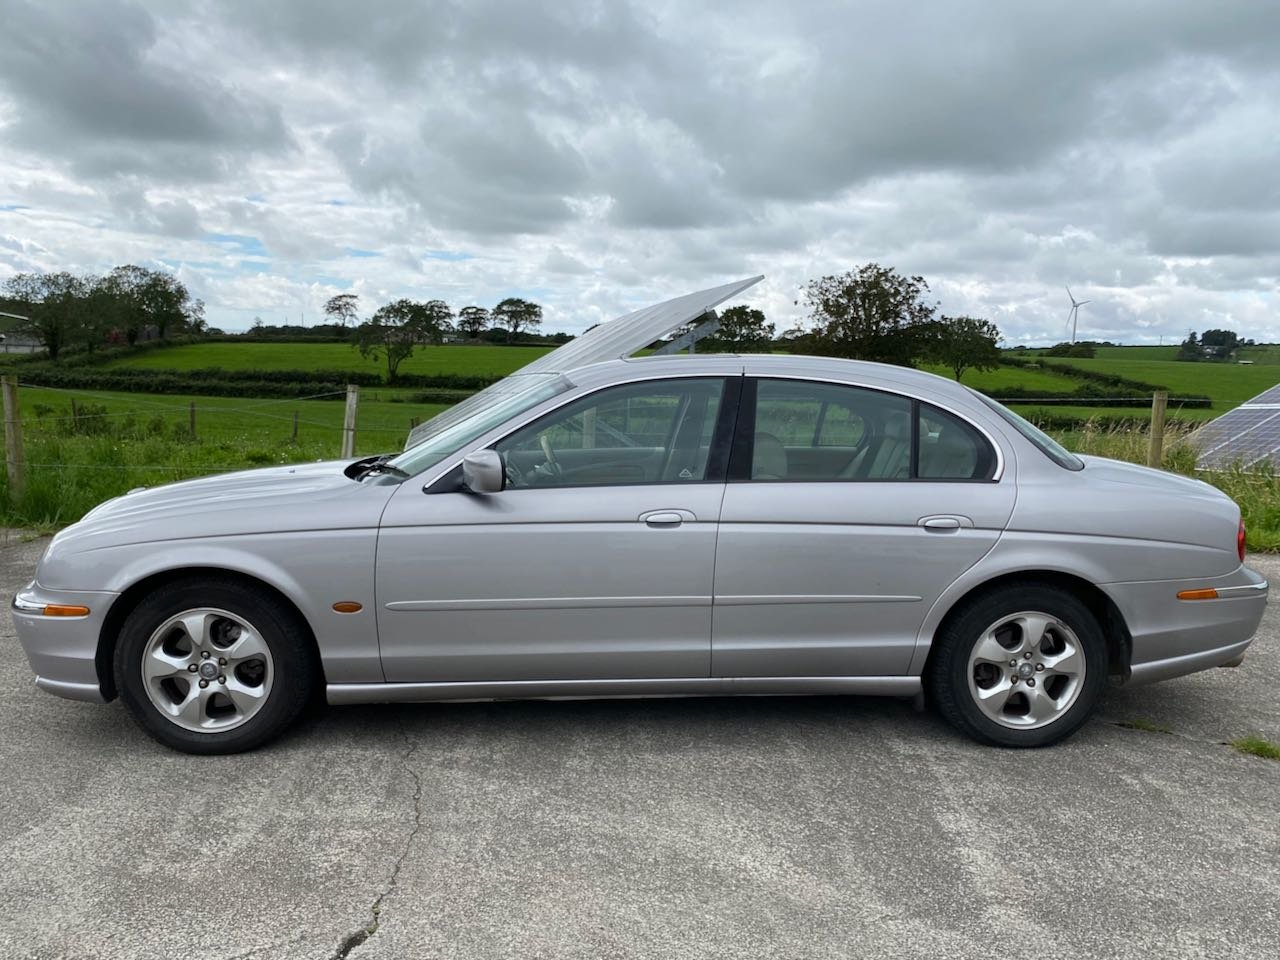 2000 Immaculate, low milage, 3 litre S-Type SOLD (picture 4 of 6)